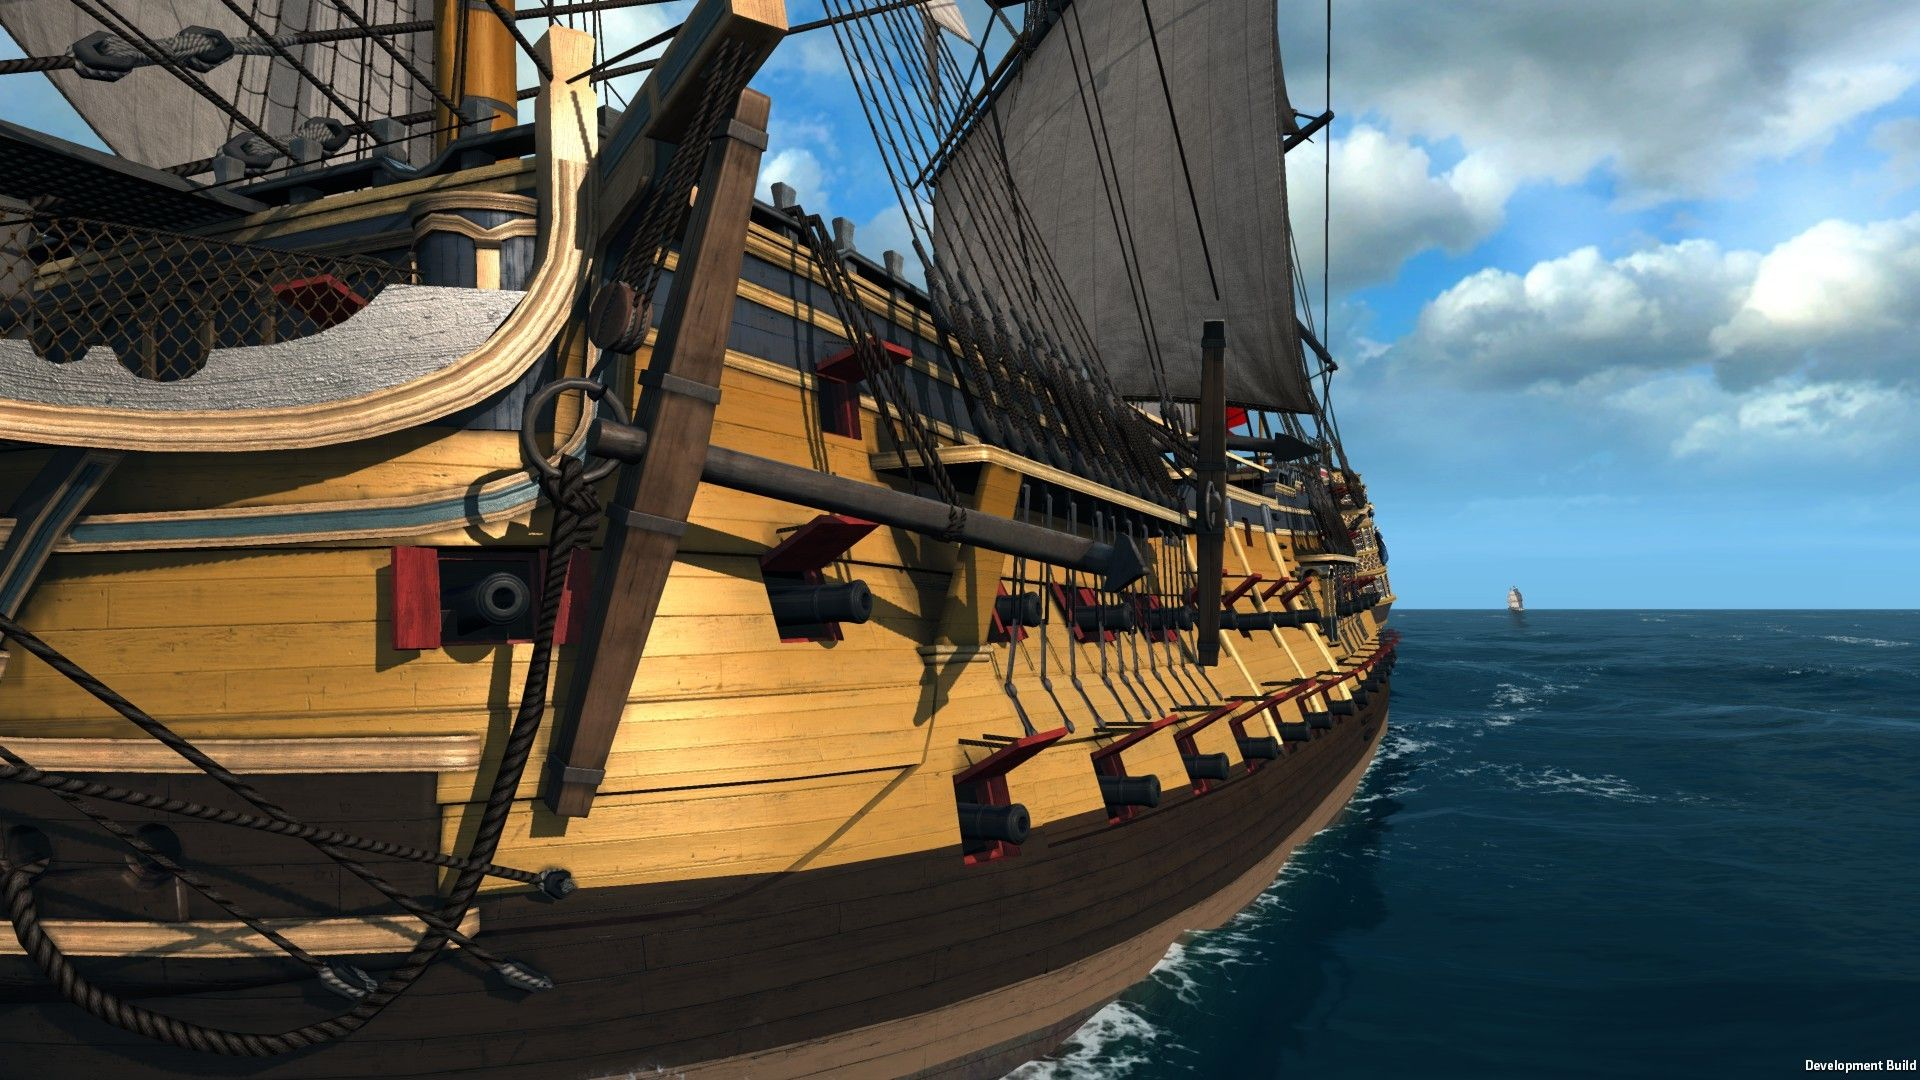 Naval Action - HMS Victory 1765